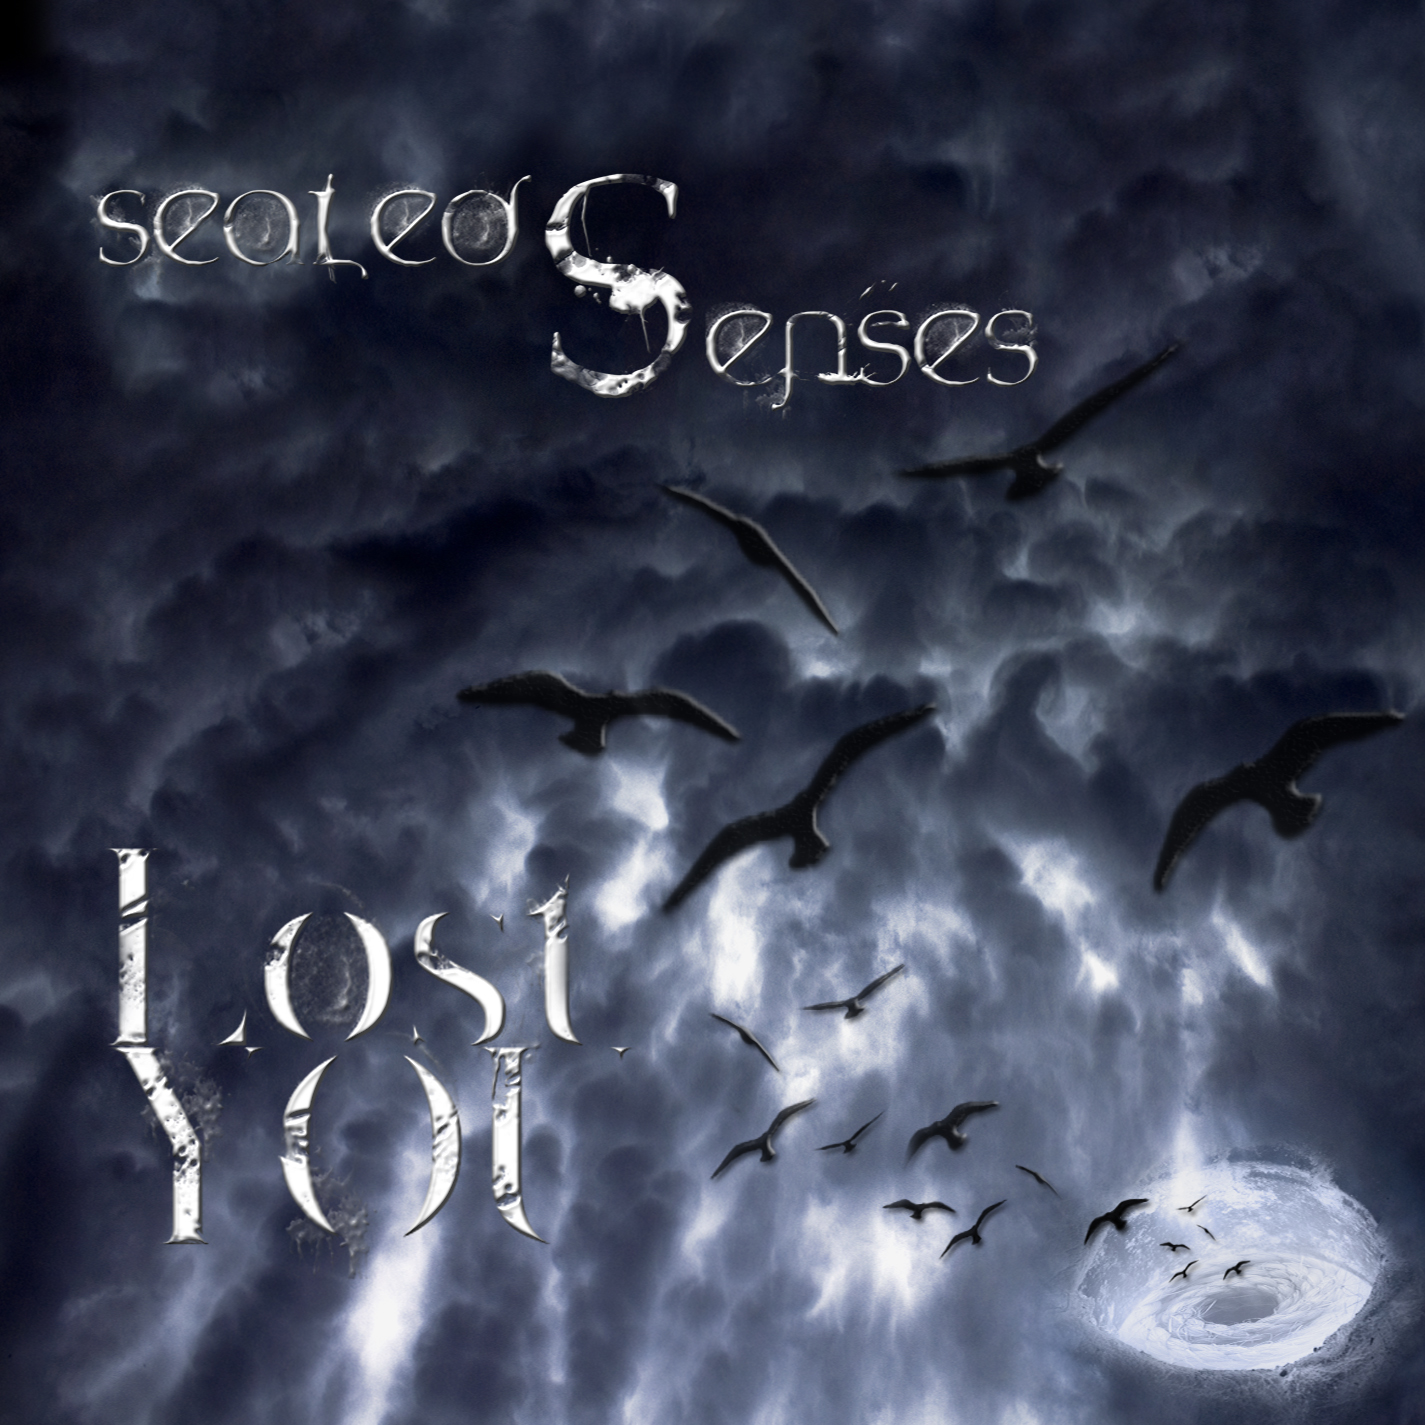 SealedSenses – Lost You